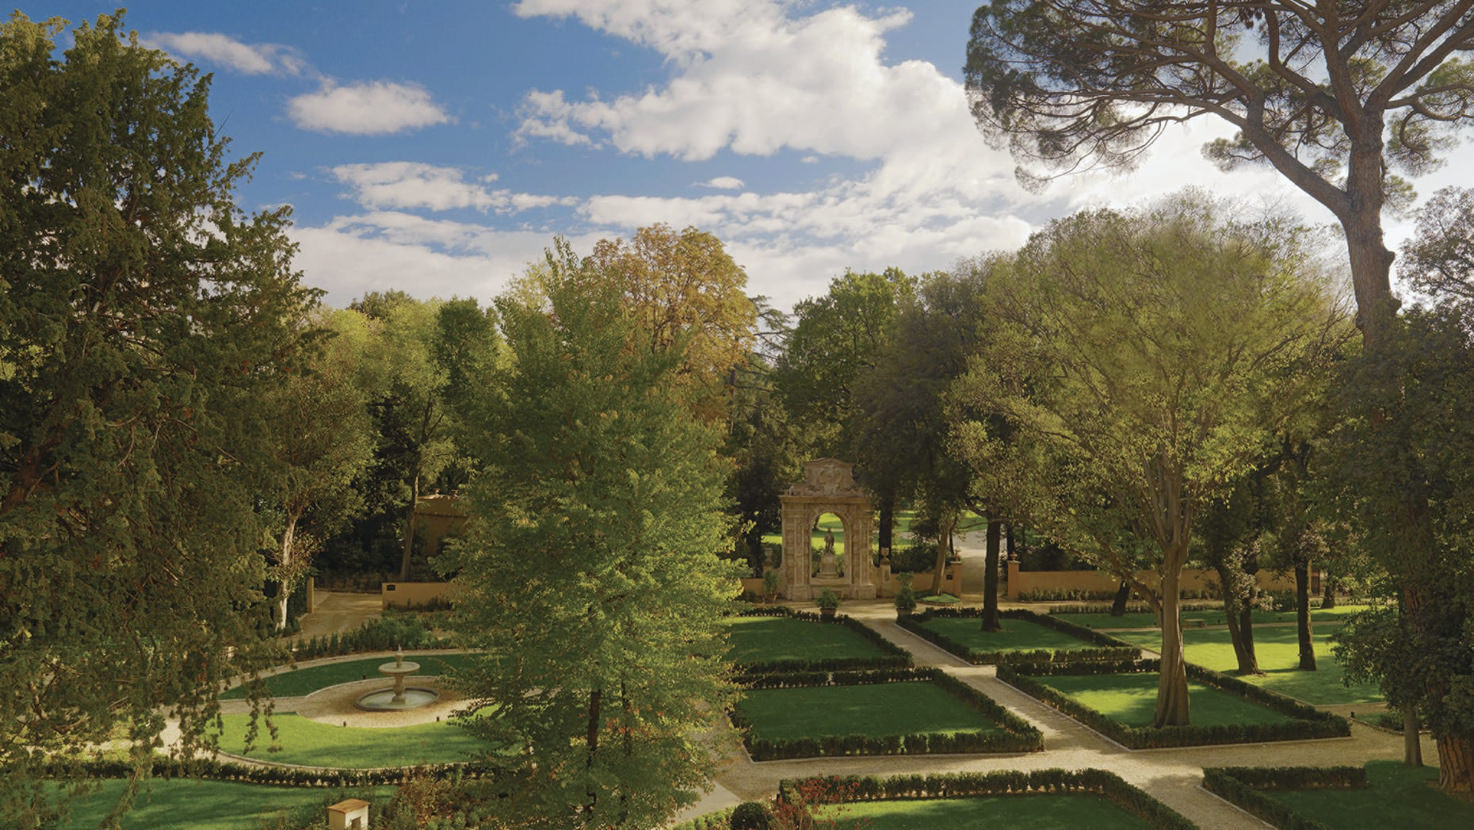 Gardens of Four Seasons Hotel in Florence